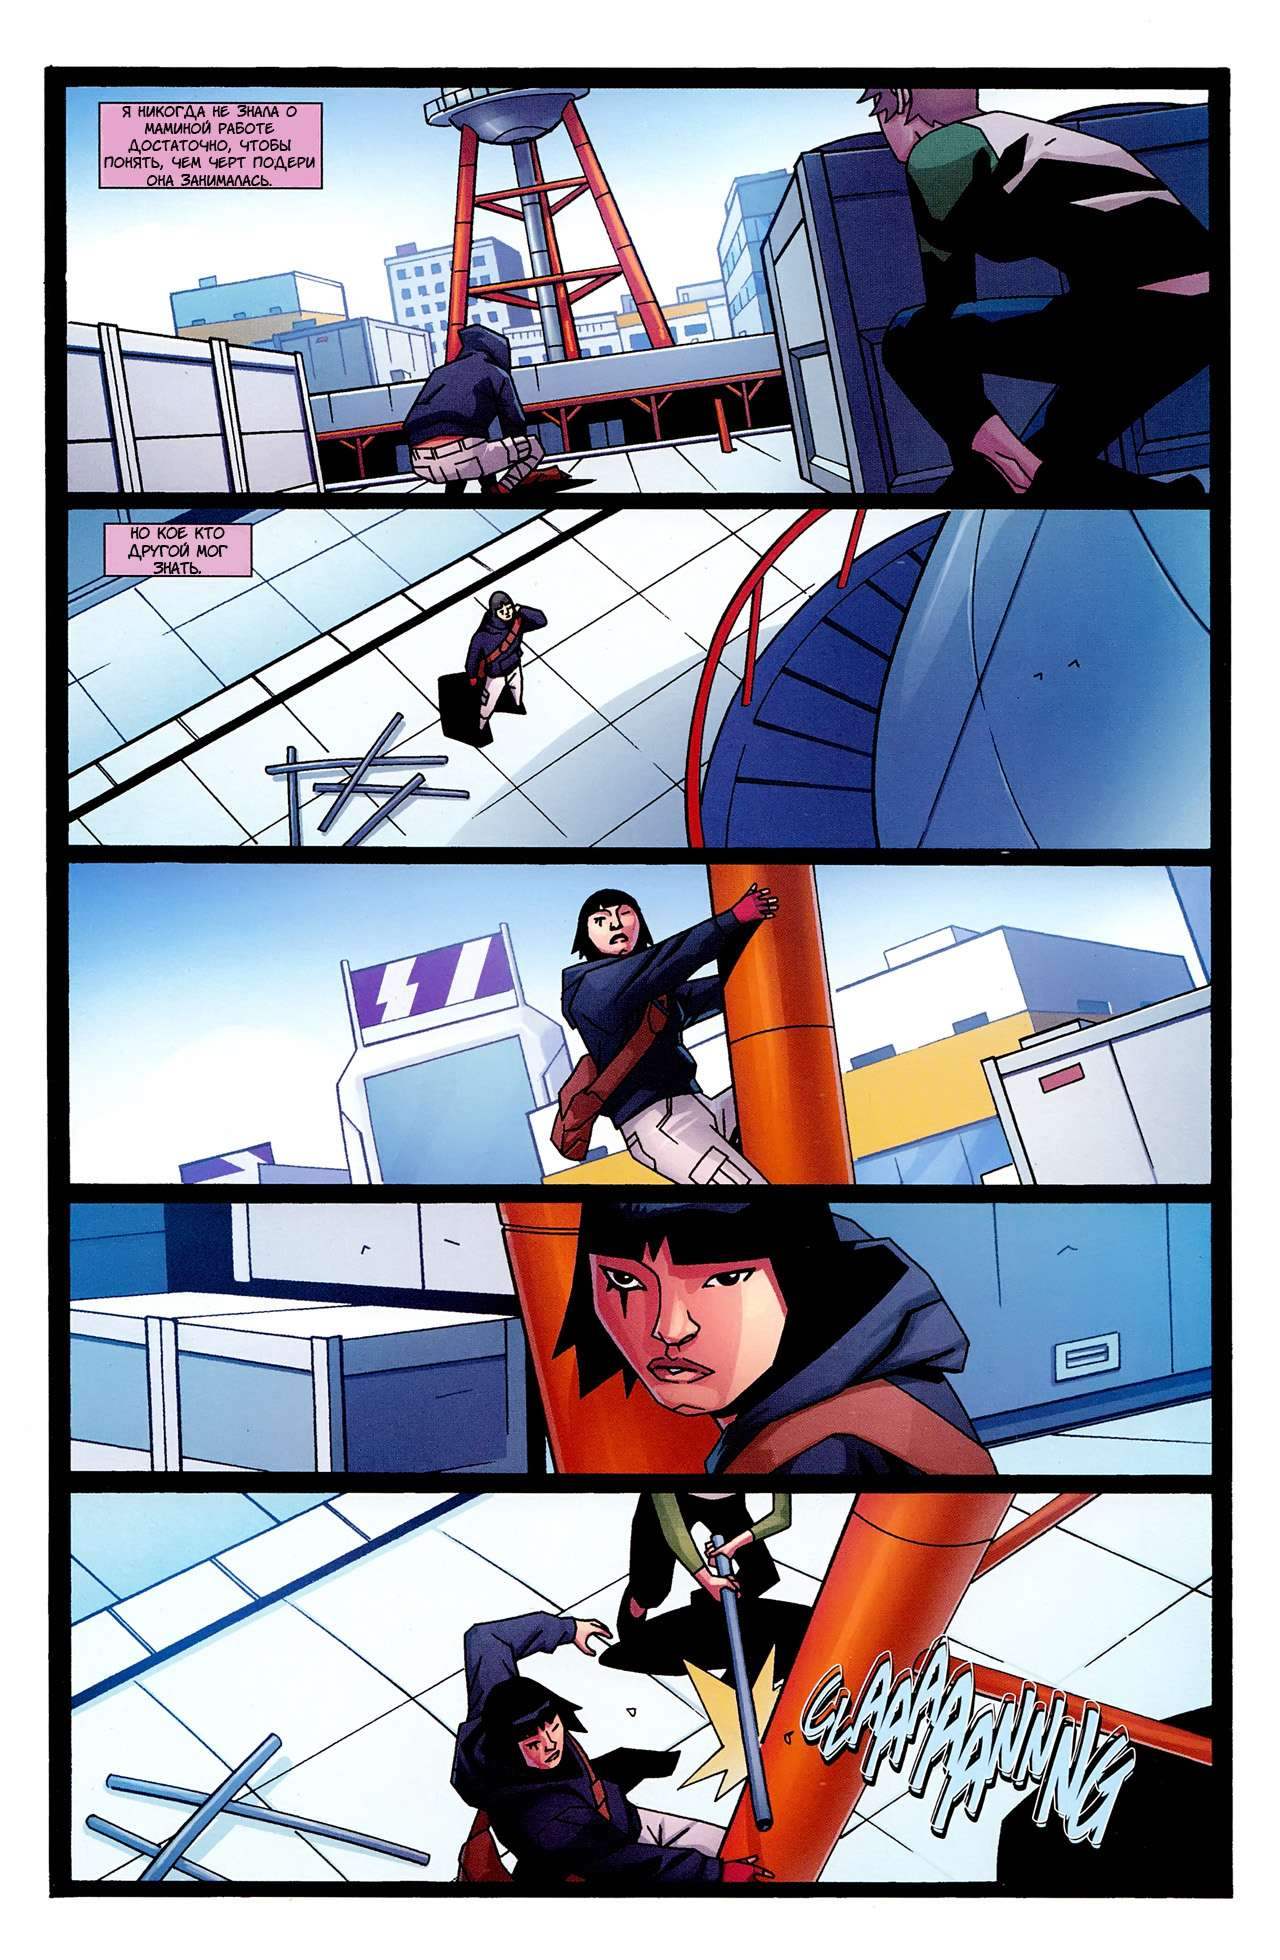 mirrors-edge-04-pg-12